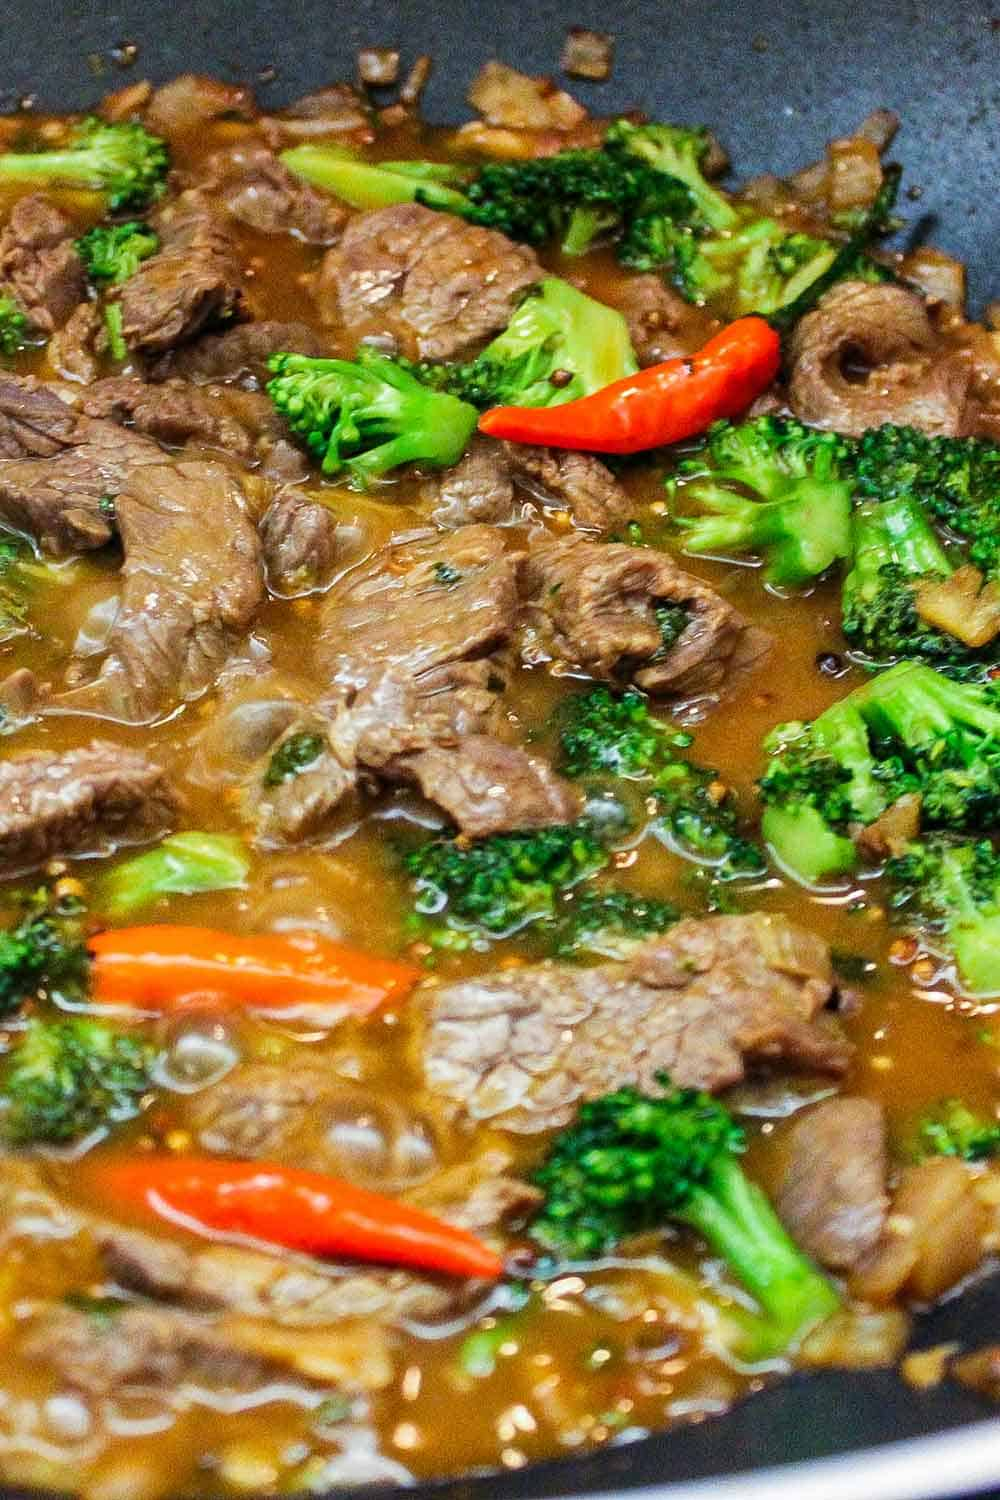 Corn starch will thicken the beef and broccoli stir-fry sauce.